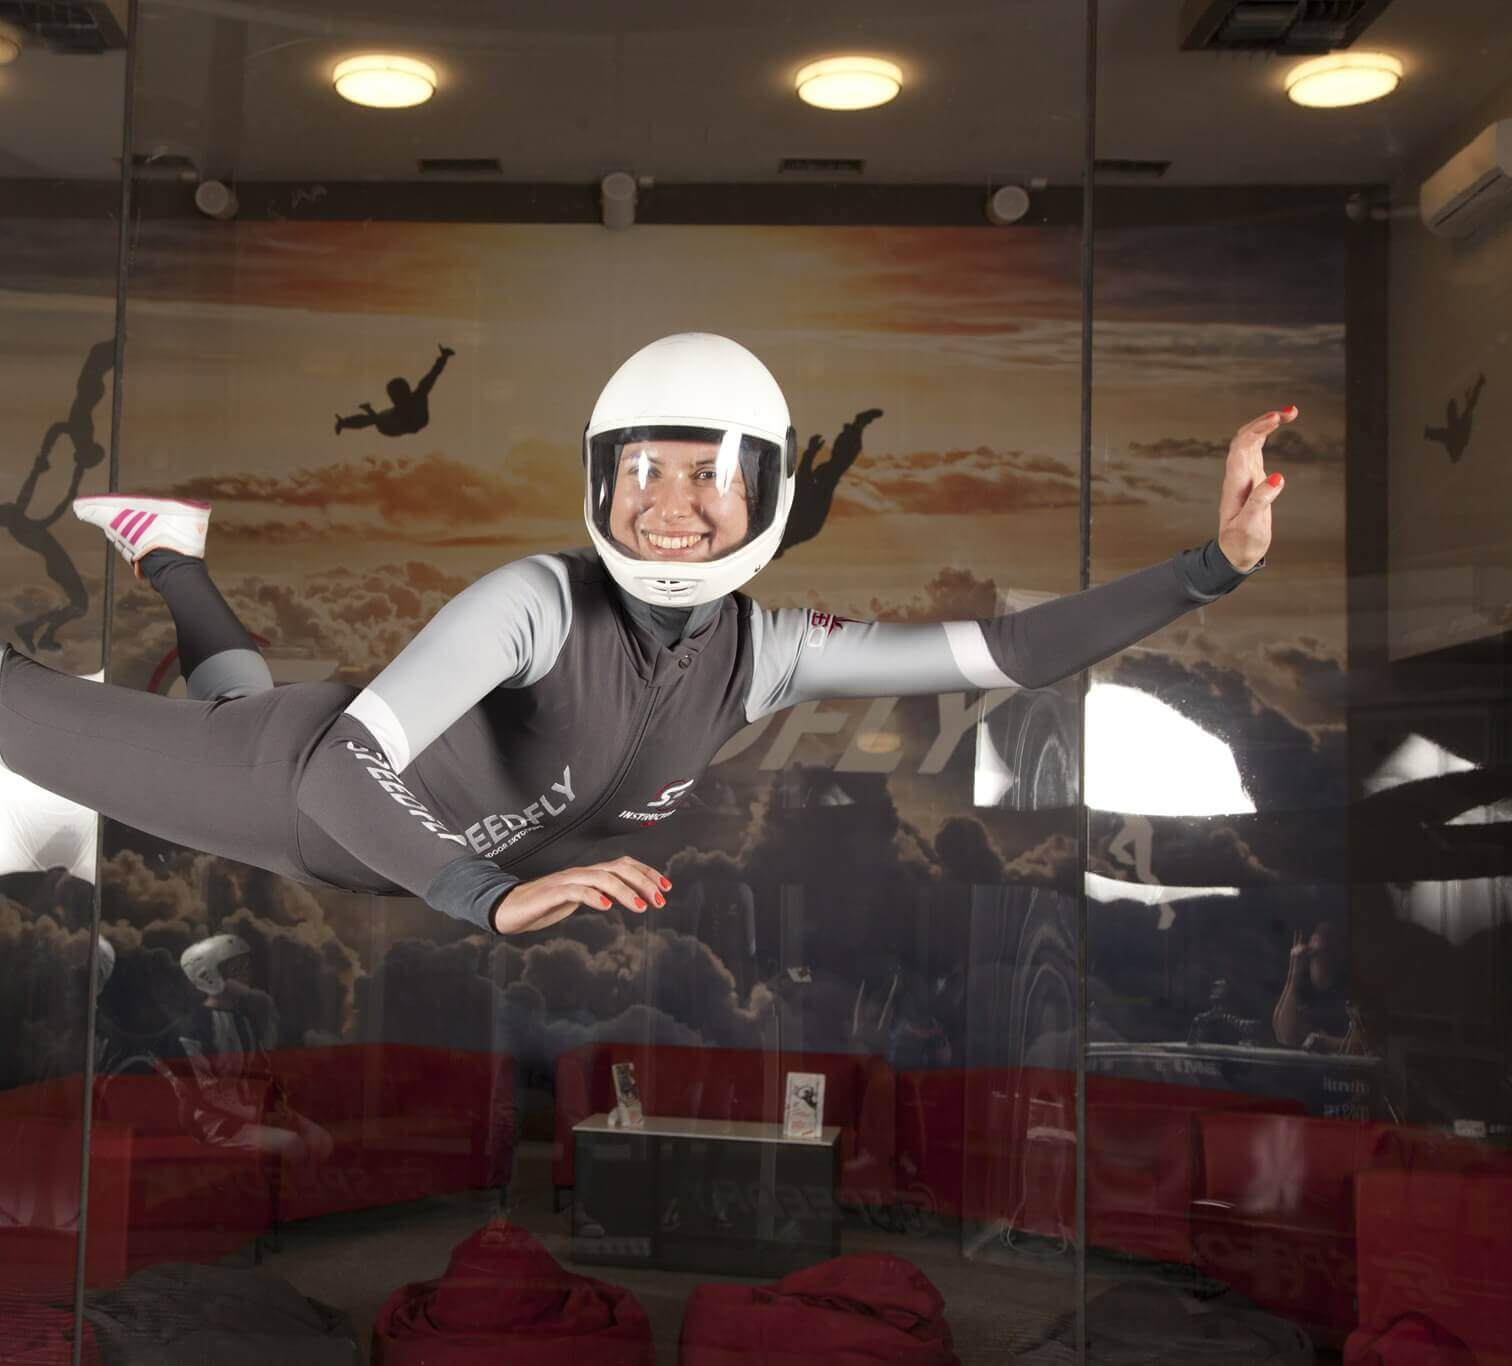 Co to jest indoor skydiving? | Tunel Aerodynamiczny SpeedFly